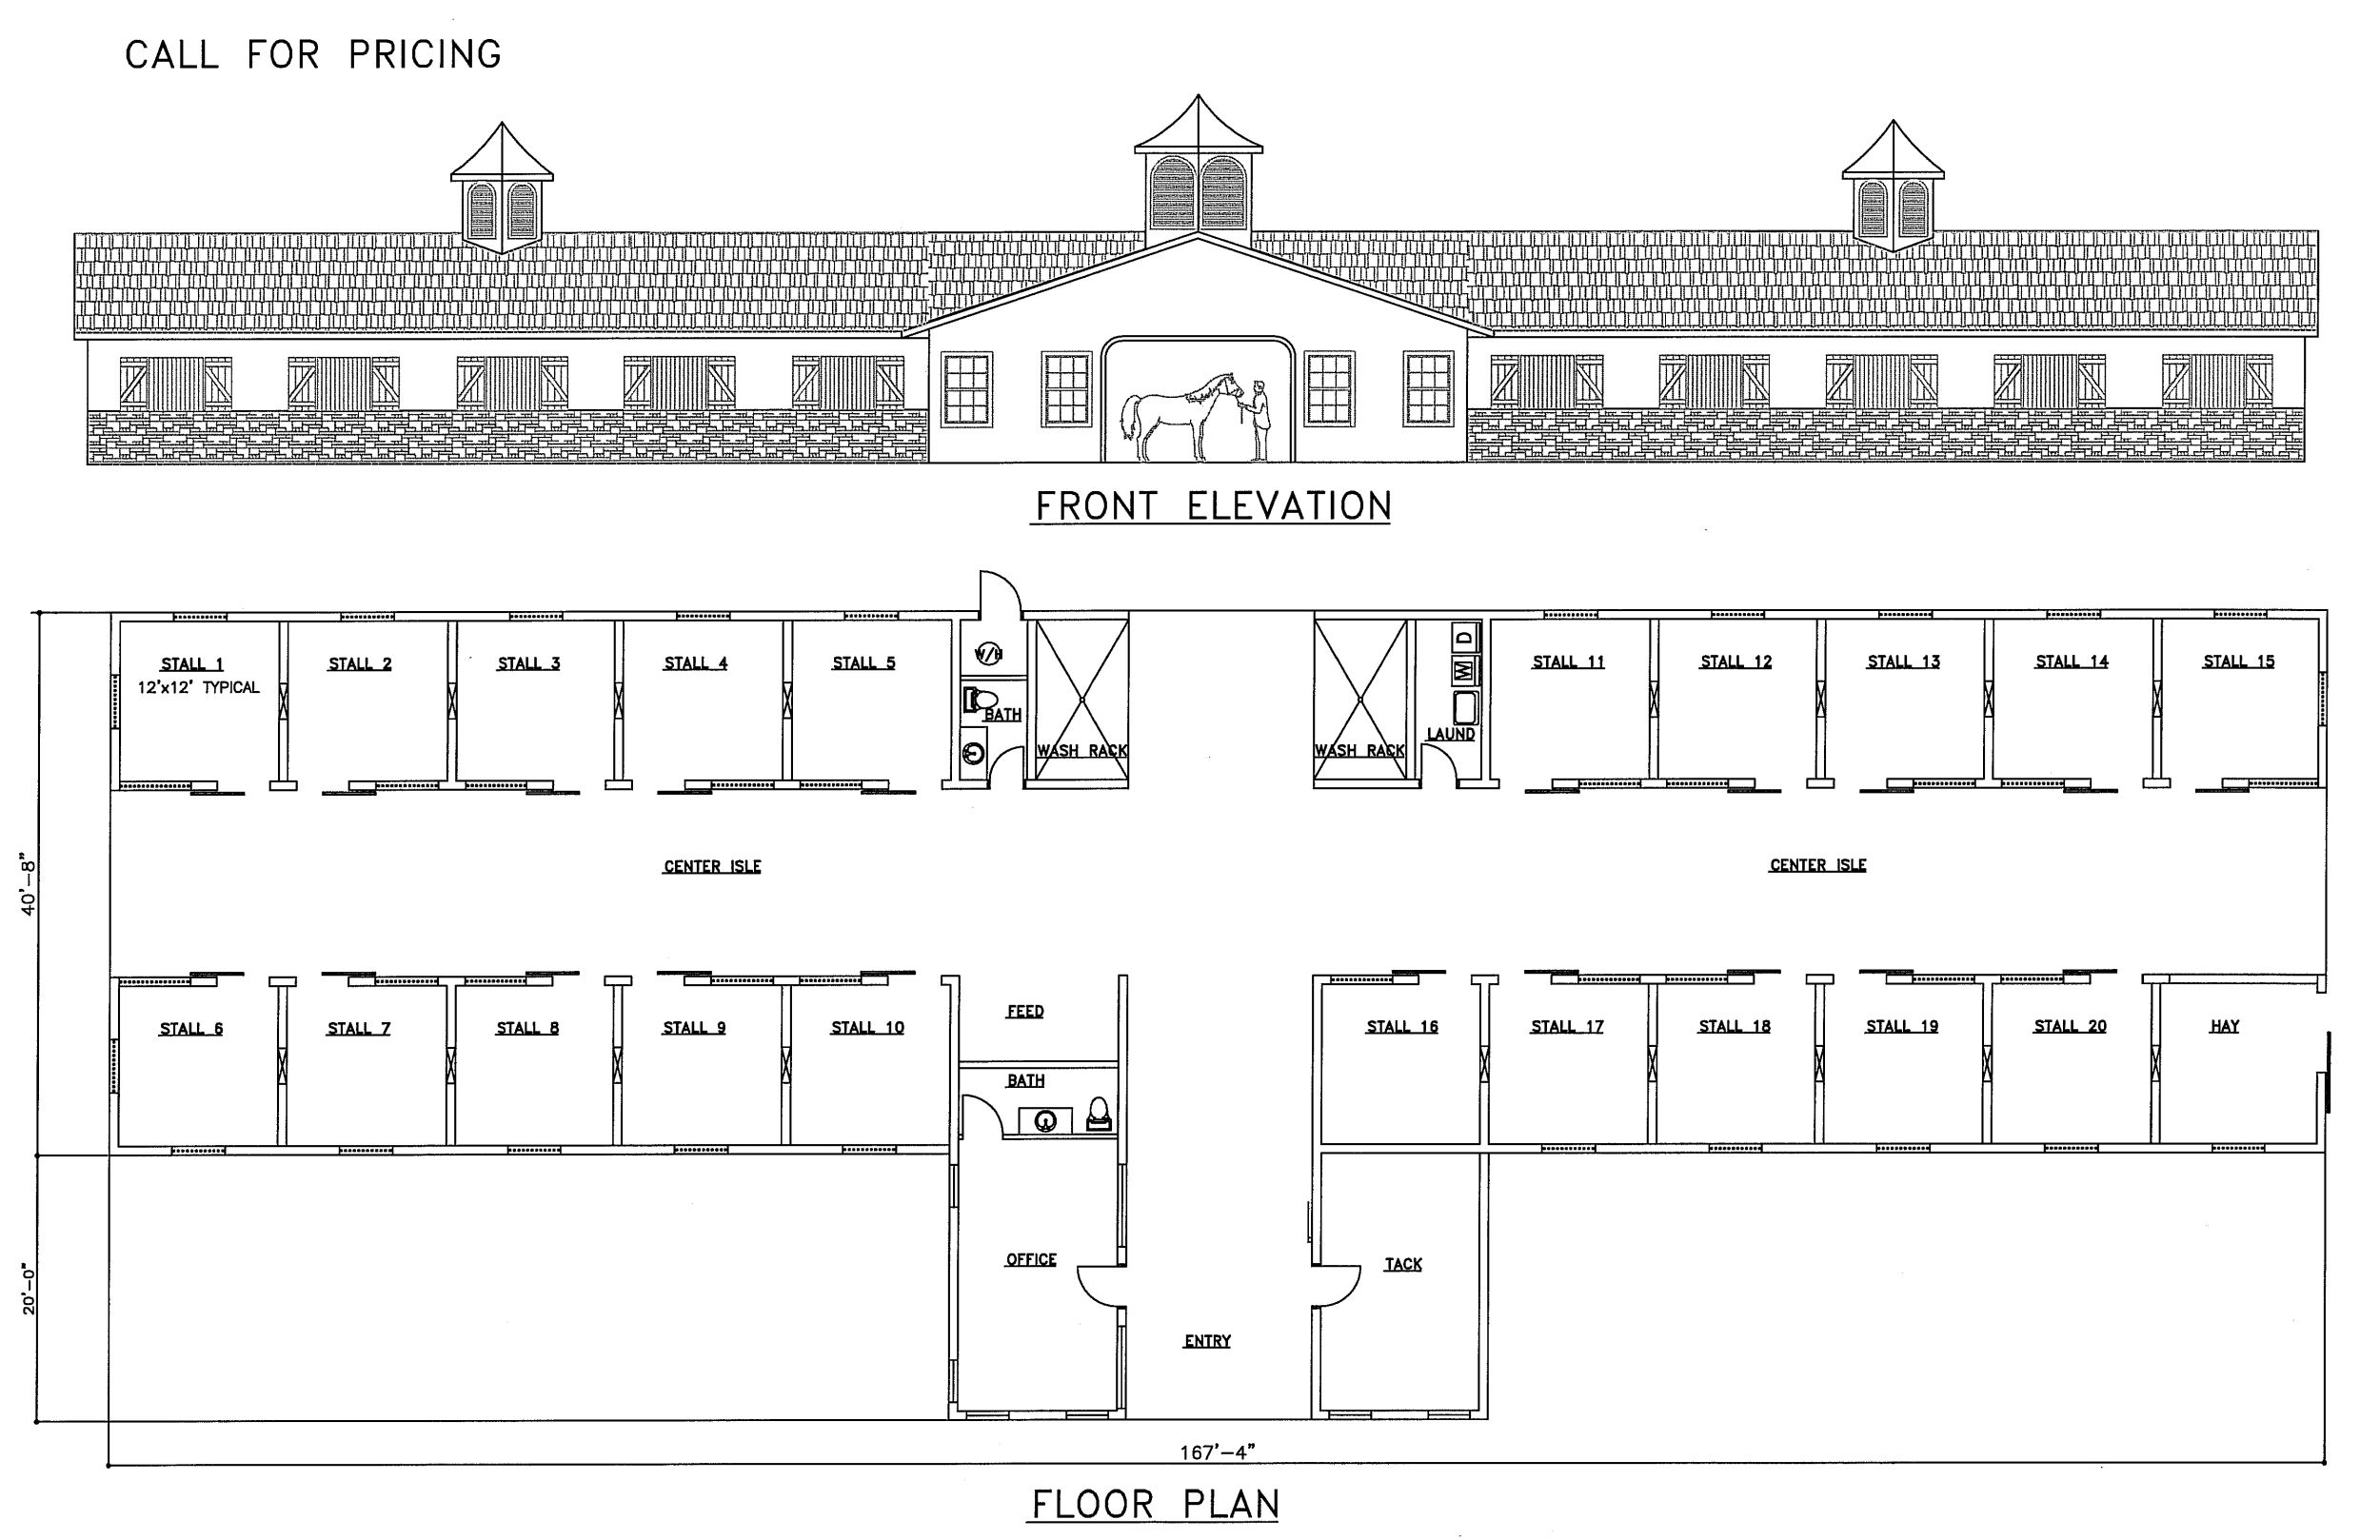 Closest Design To What I Want But Would Still Need Some Tweaking Http Jjocala Com Horse Barns Gallery Horse Barn Plans Horse Barn Designs Dream Horse Barns